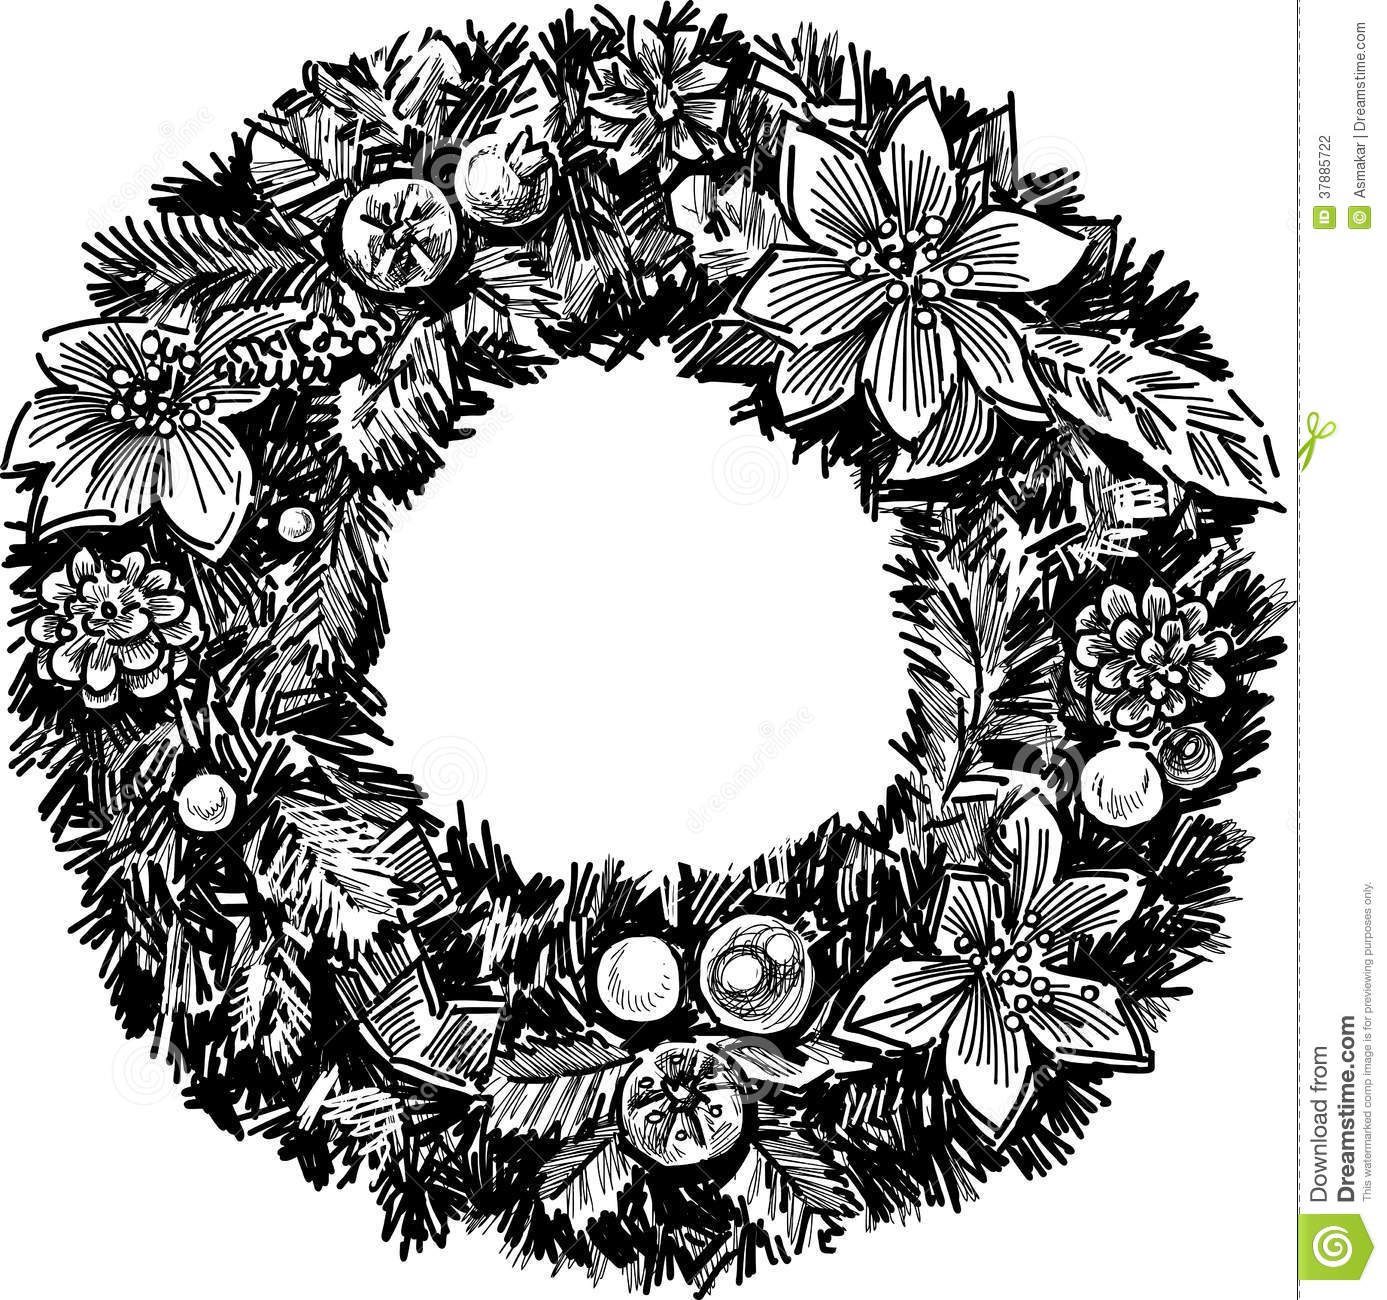 Christmas wreath stock vector. Illustration of graphical - 37885722